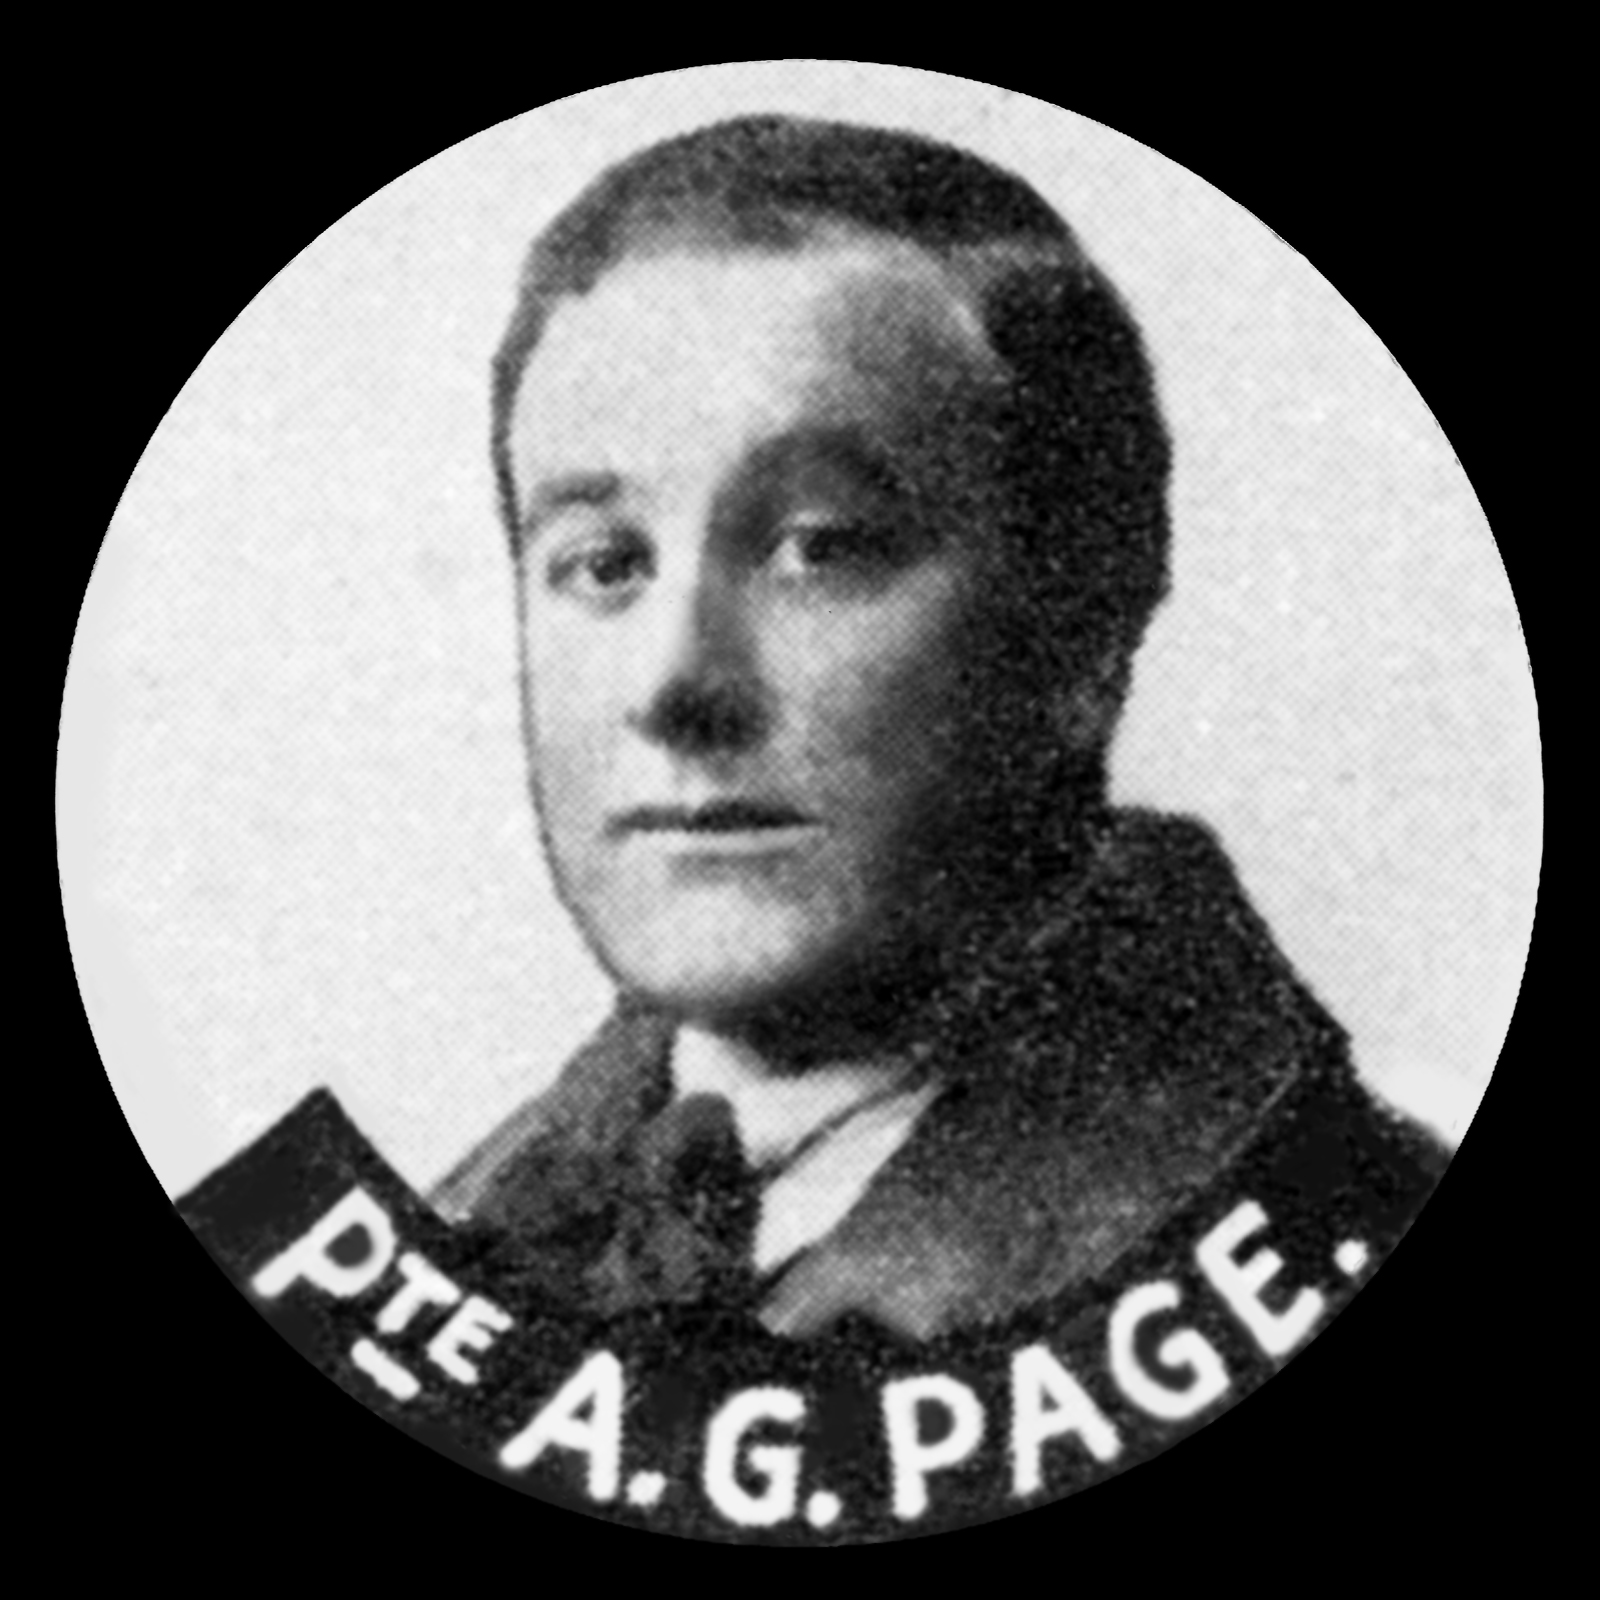 PAGE Albert Gordon